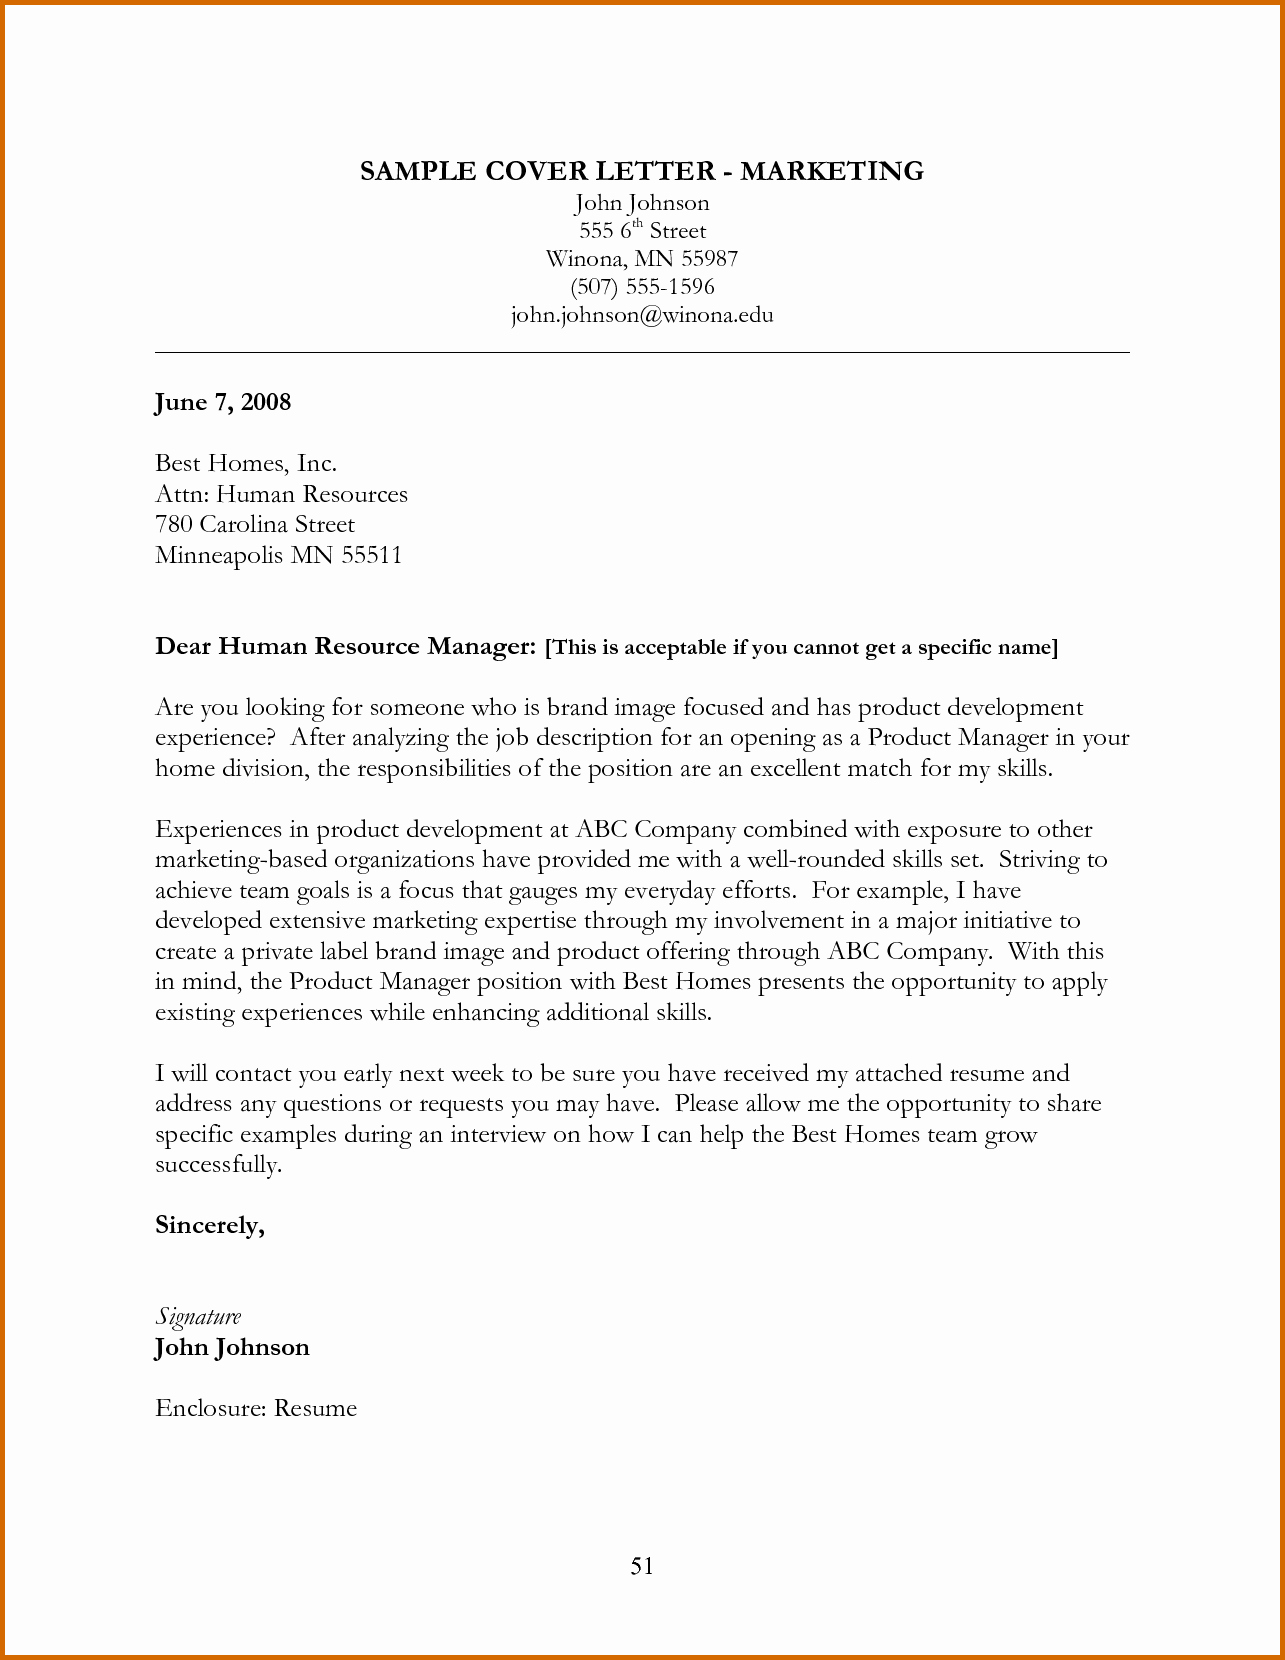 How to Cover Letter Template Luxury 10 How to Write A Marketing Cover Letter